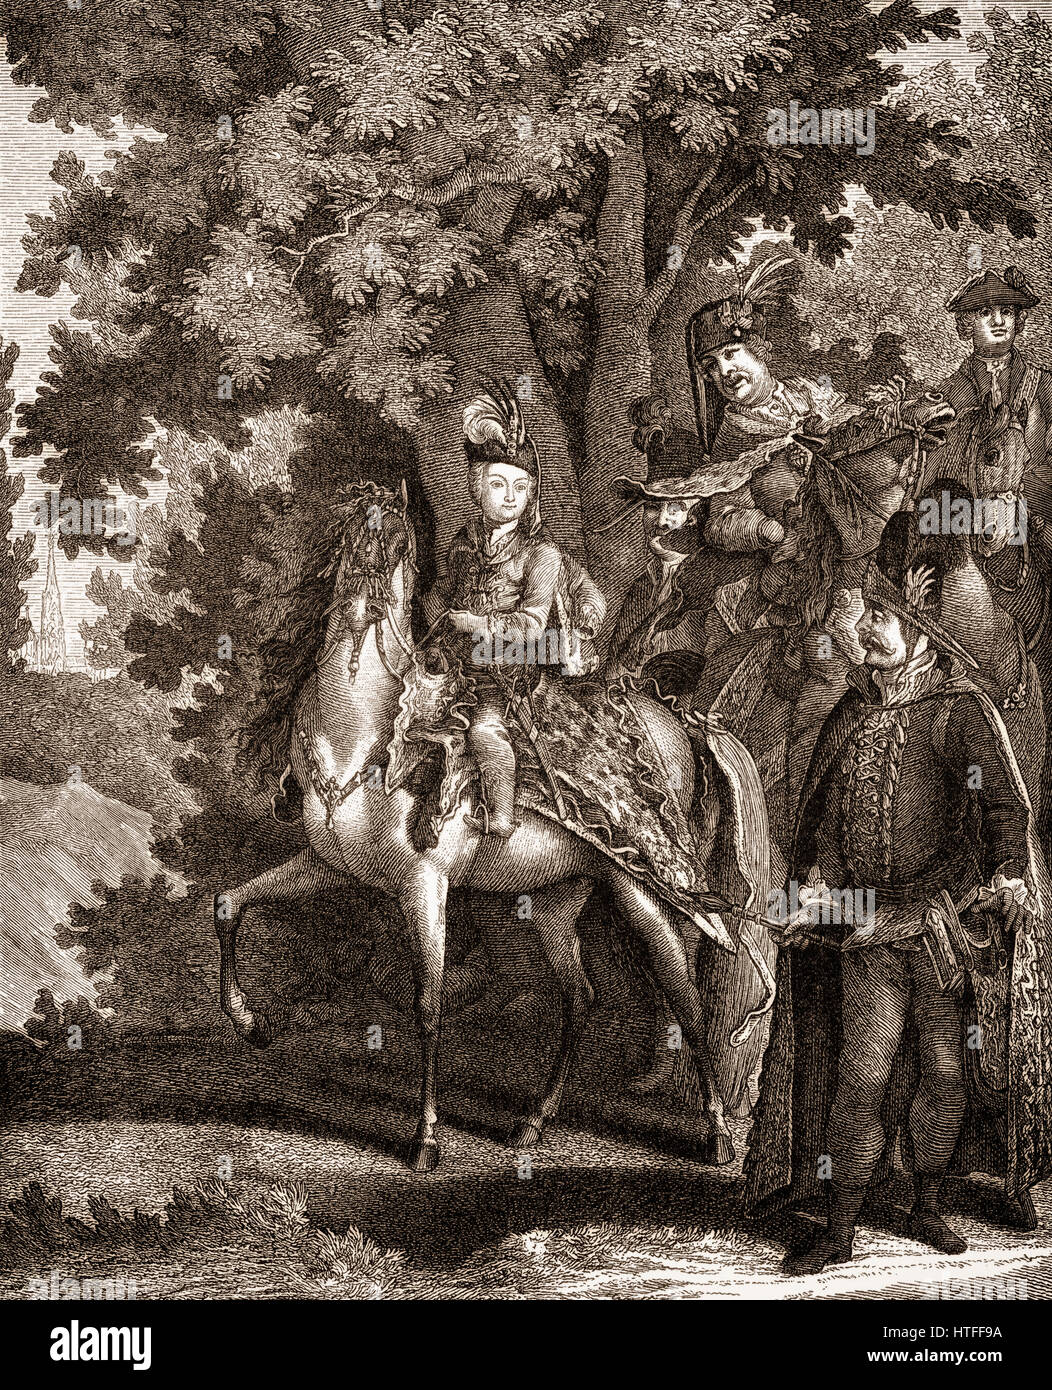 Joseph II, Emperor of Germany, 1741-1790, learning to ride at the age of six Stock Photo